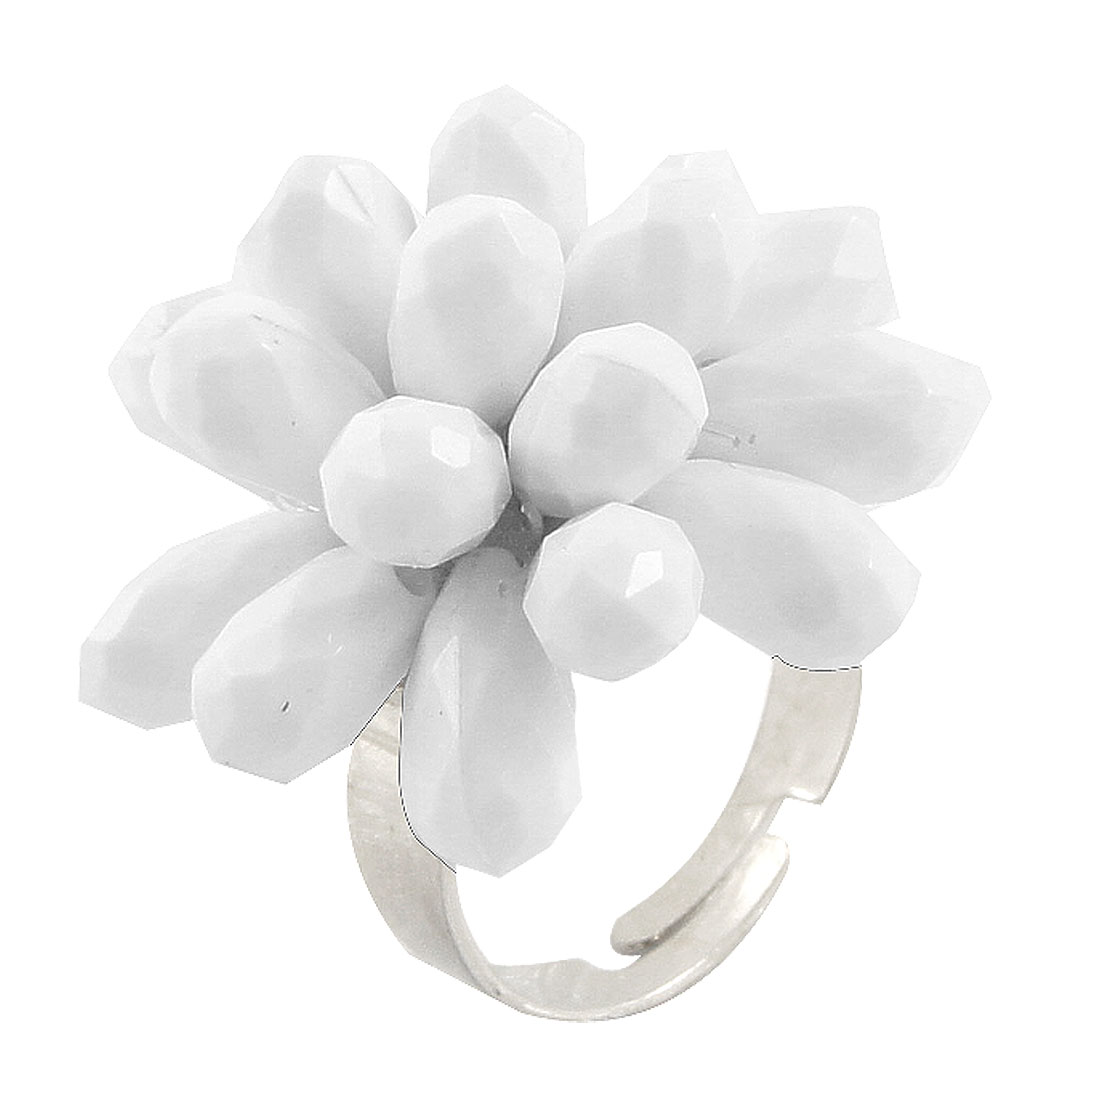 Lady Faceted White Plastic Beads Accent Finger Ring US 7 3/4